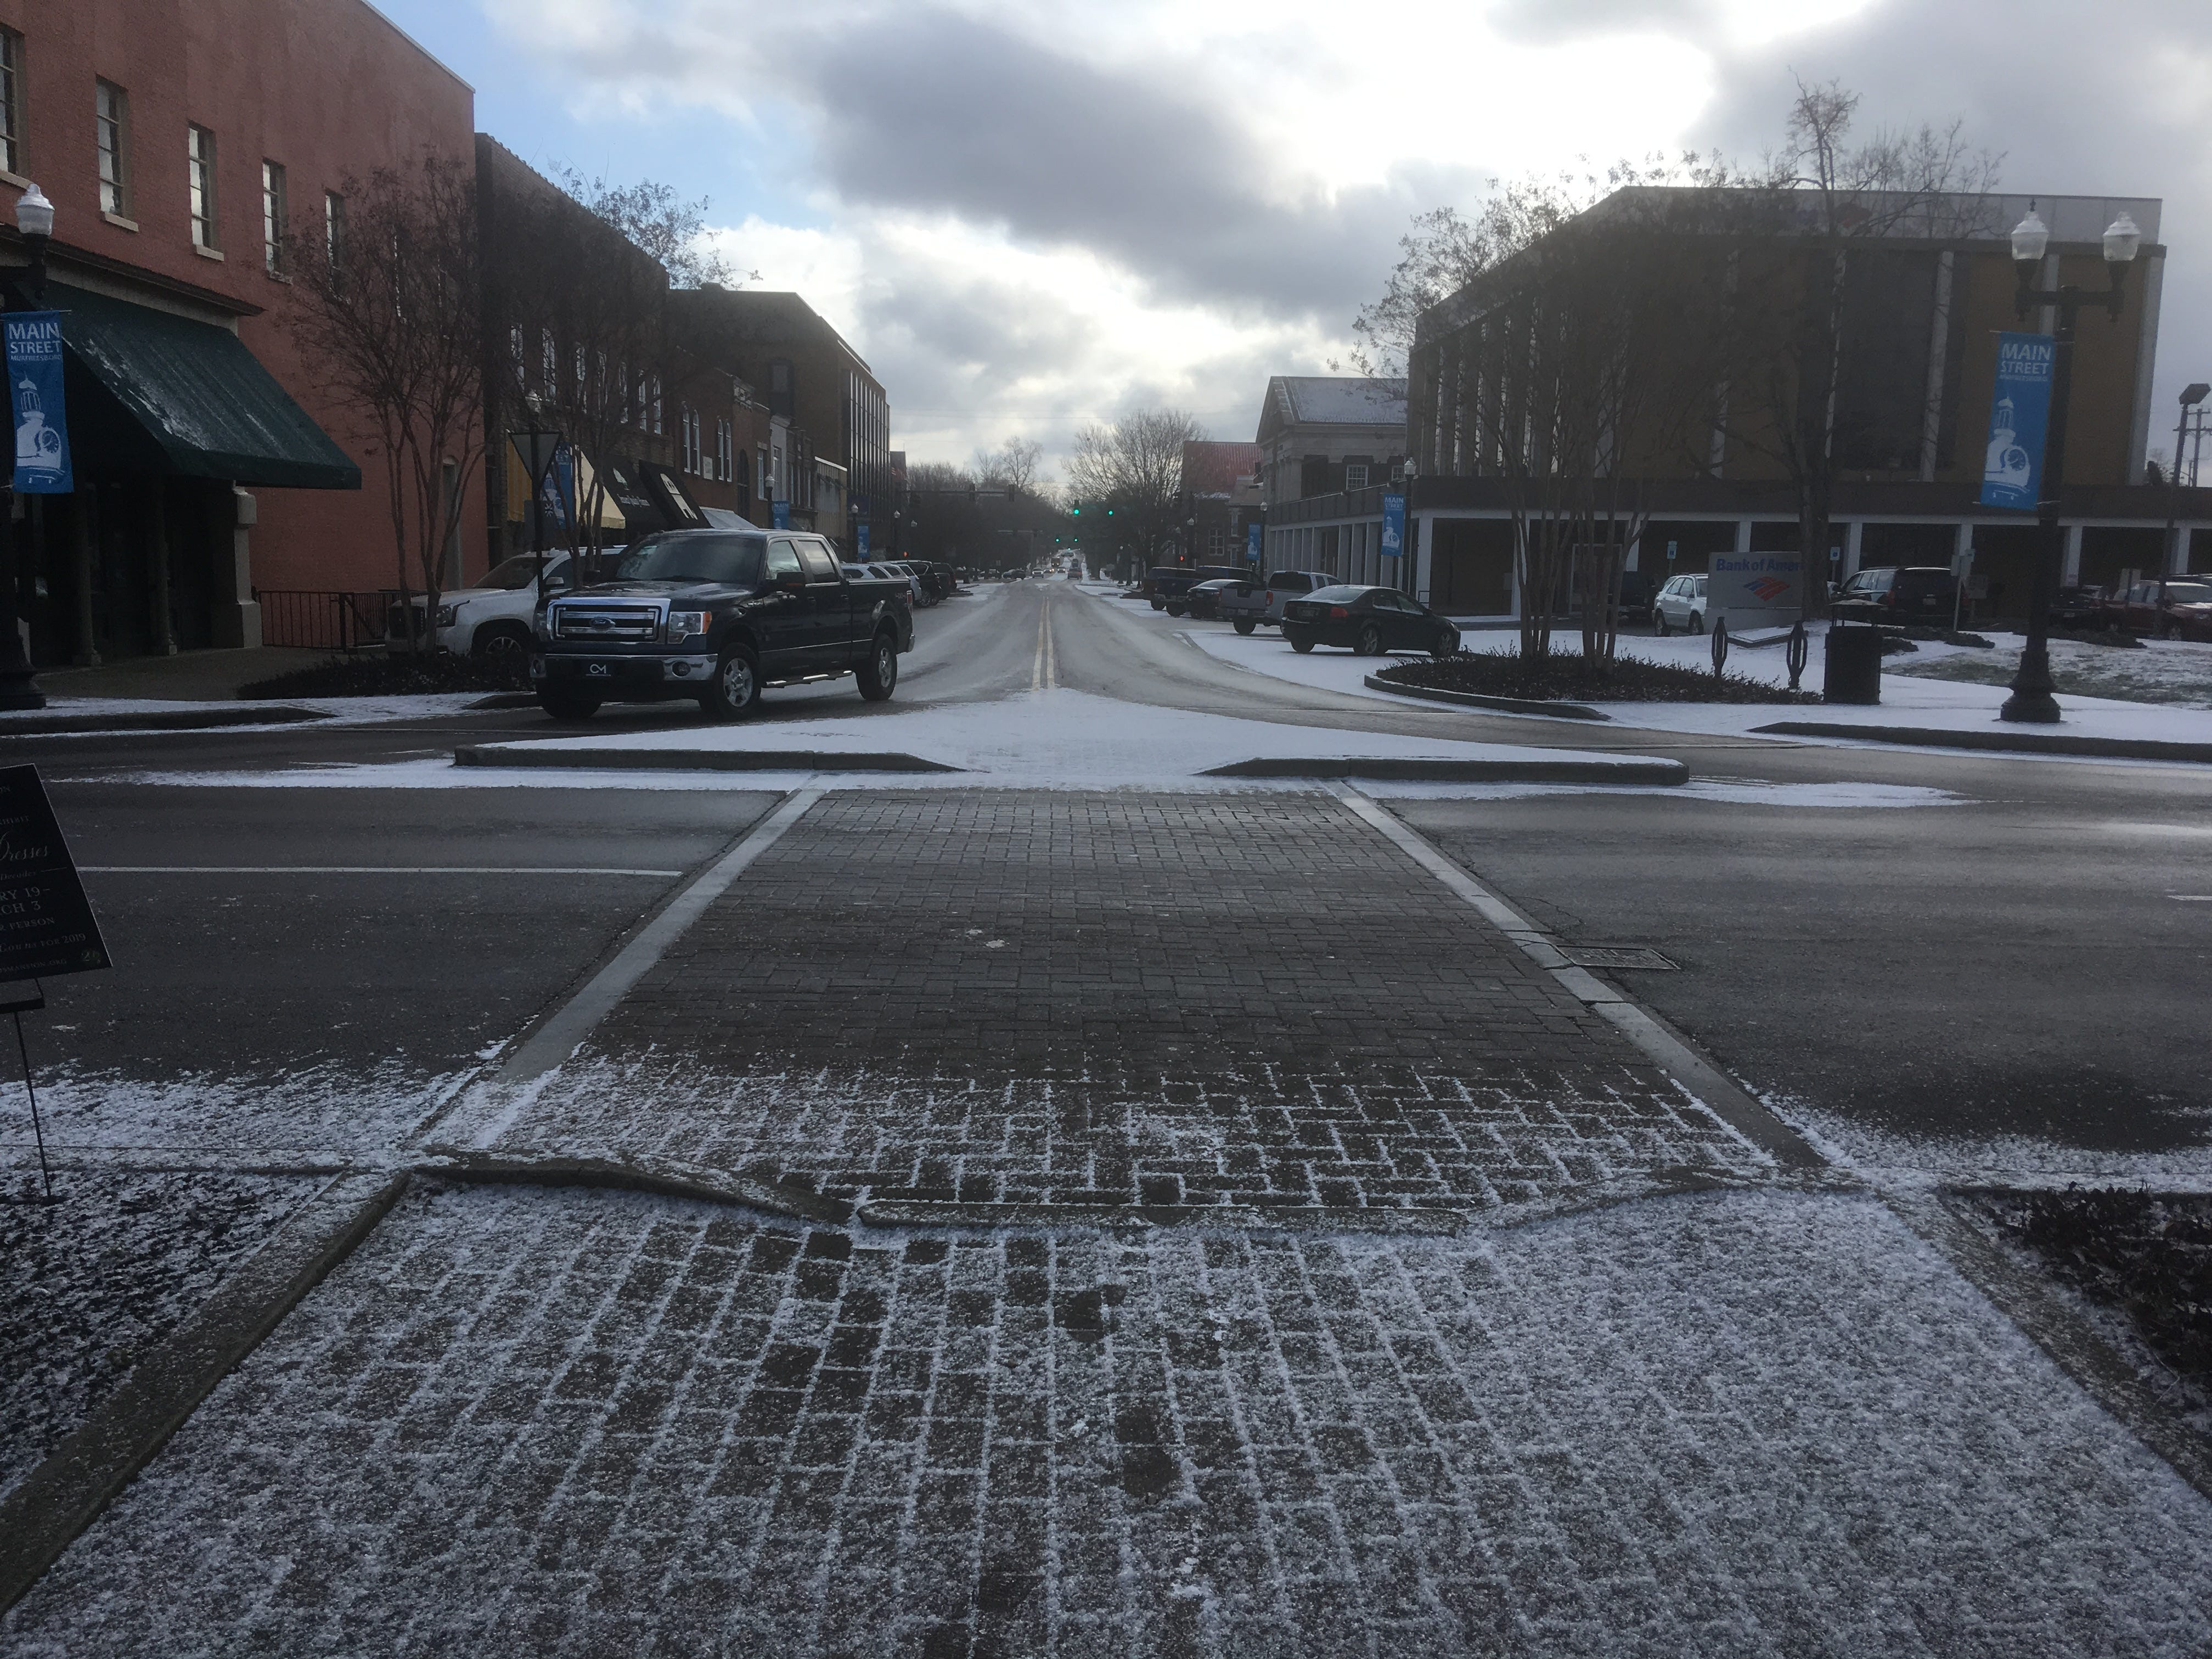 East Main Street in downtown Murfreesboro was passable after a surprise snow shower on Wednesday, Jan. 30, 2019.